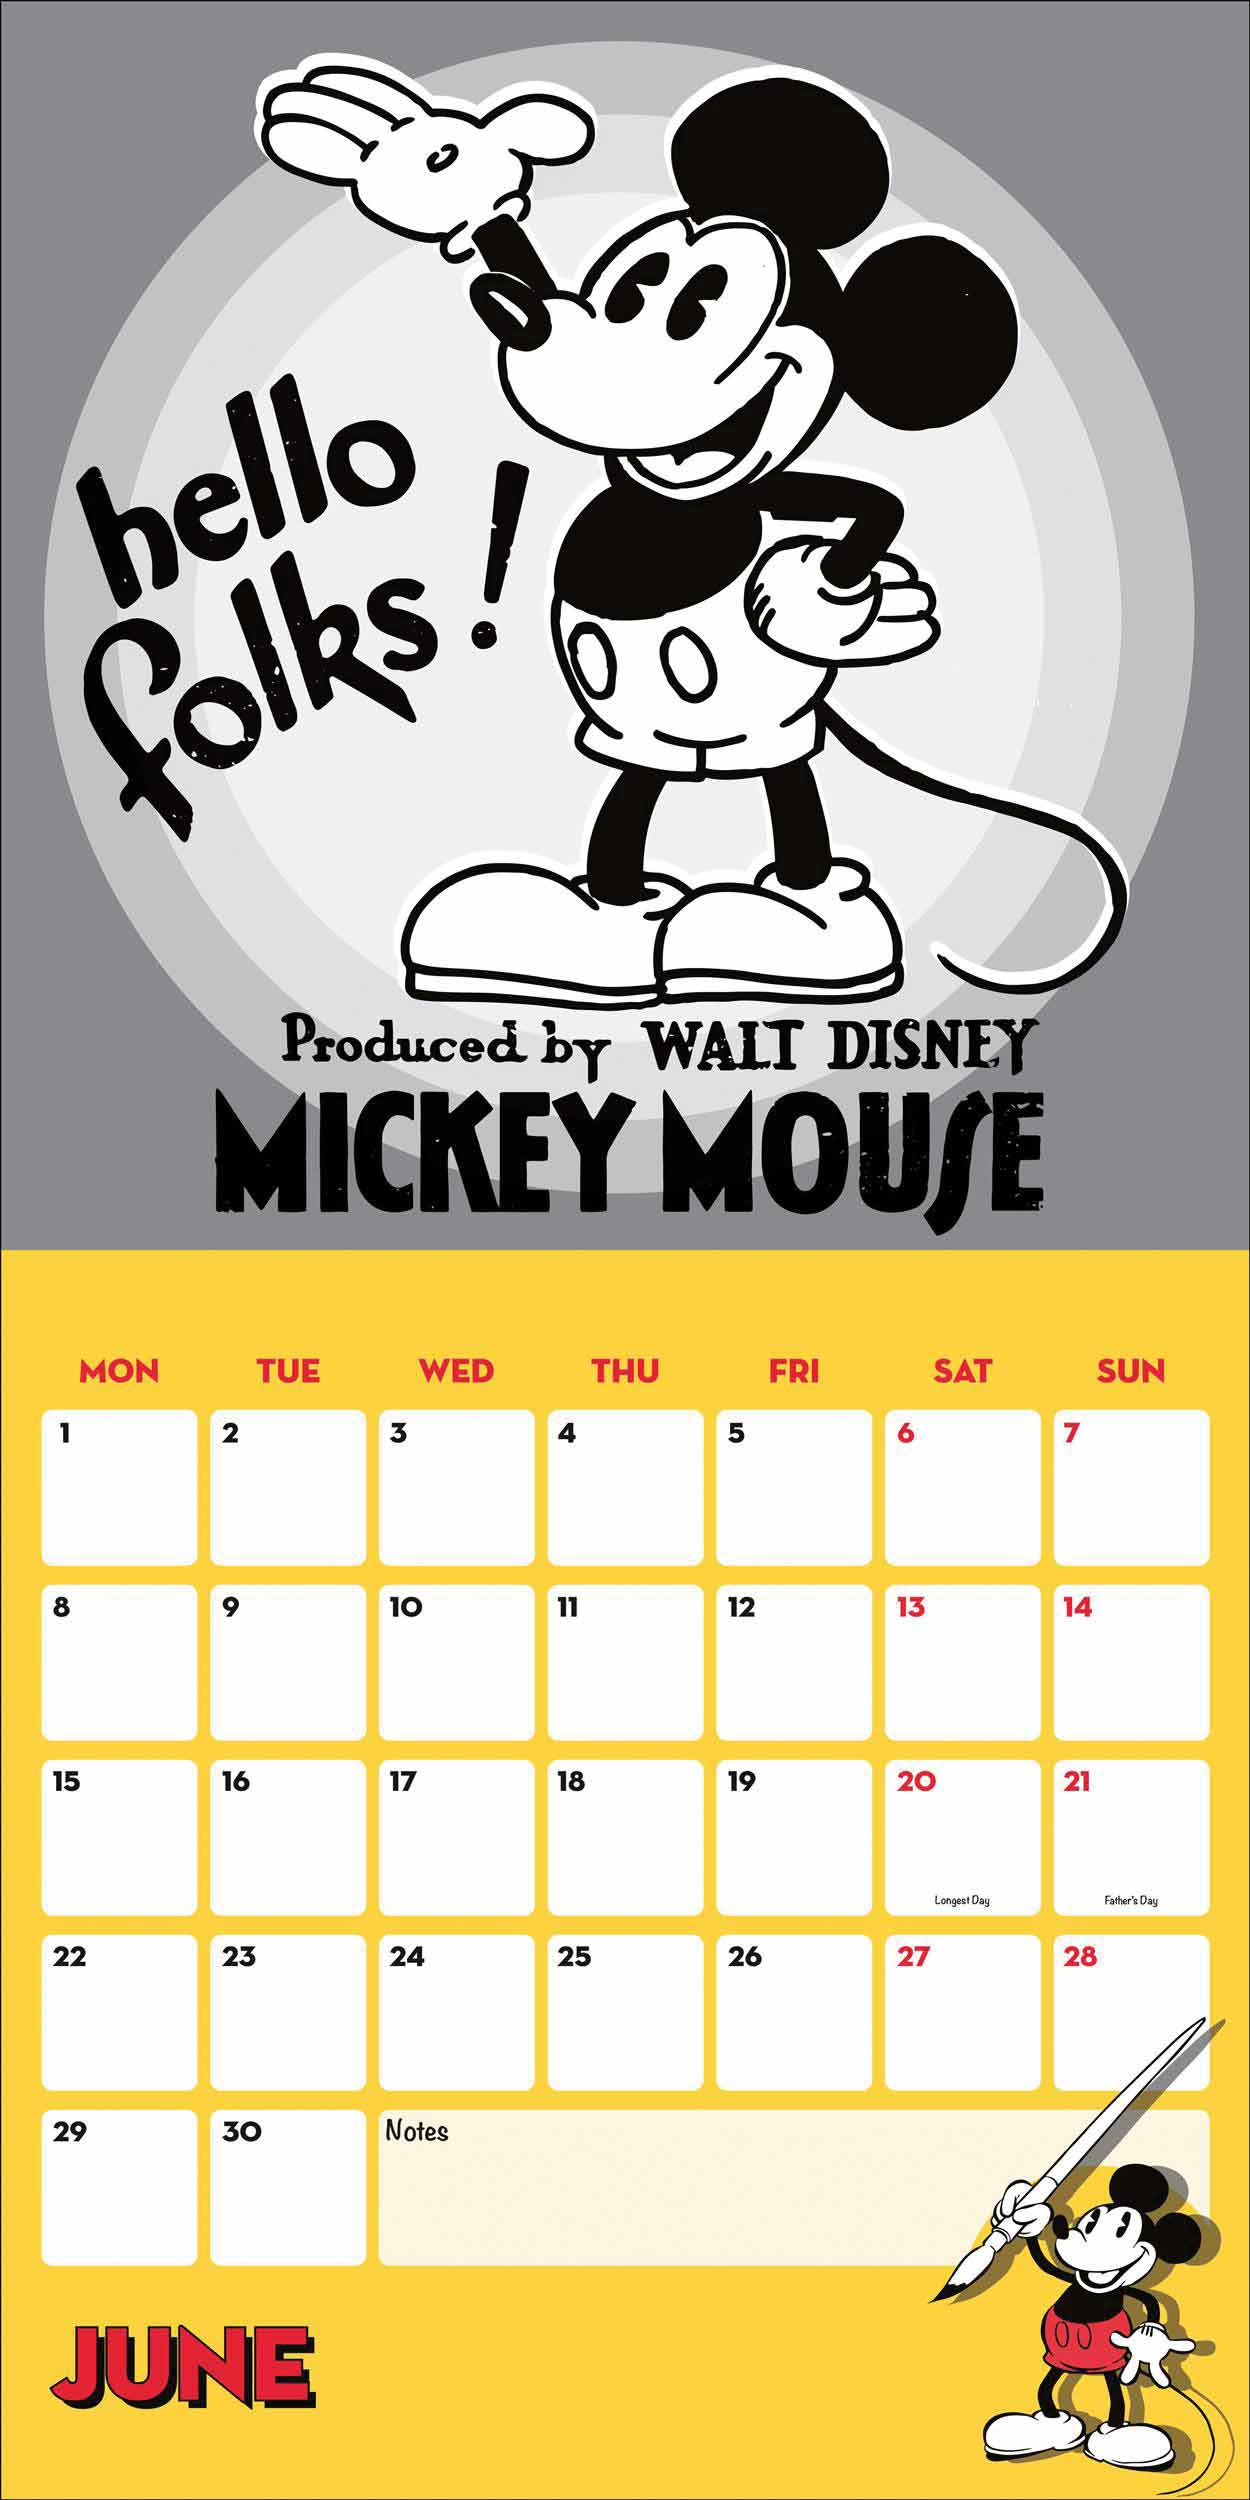 Disney, Mickey Mouse Official Calendar 2020